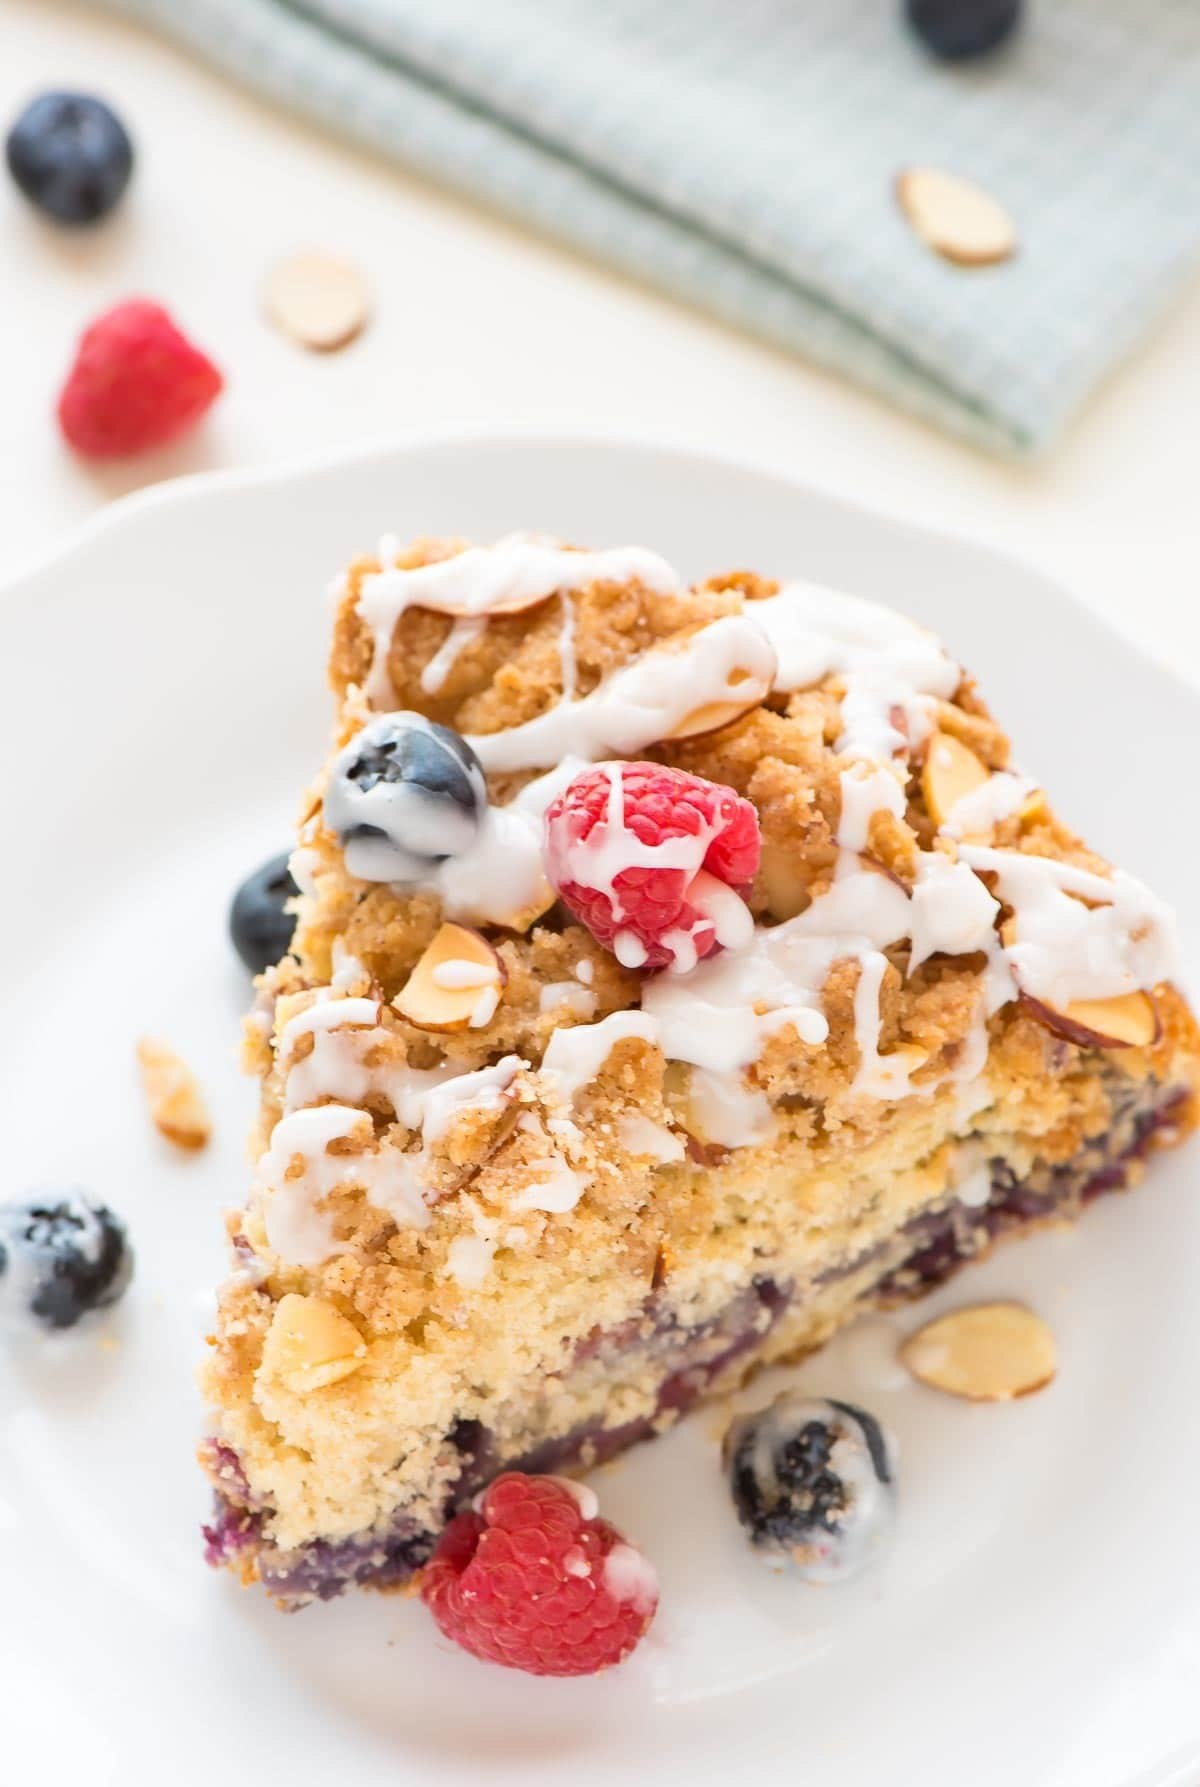 Martha Stewart Blueberry Crumb Cake Recipe